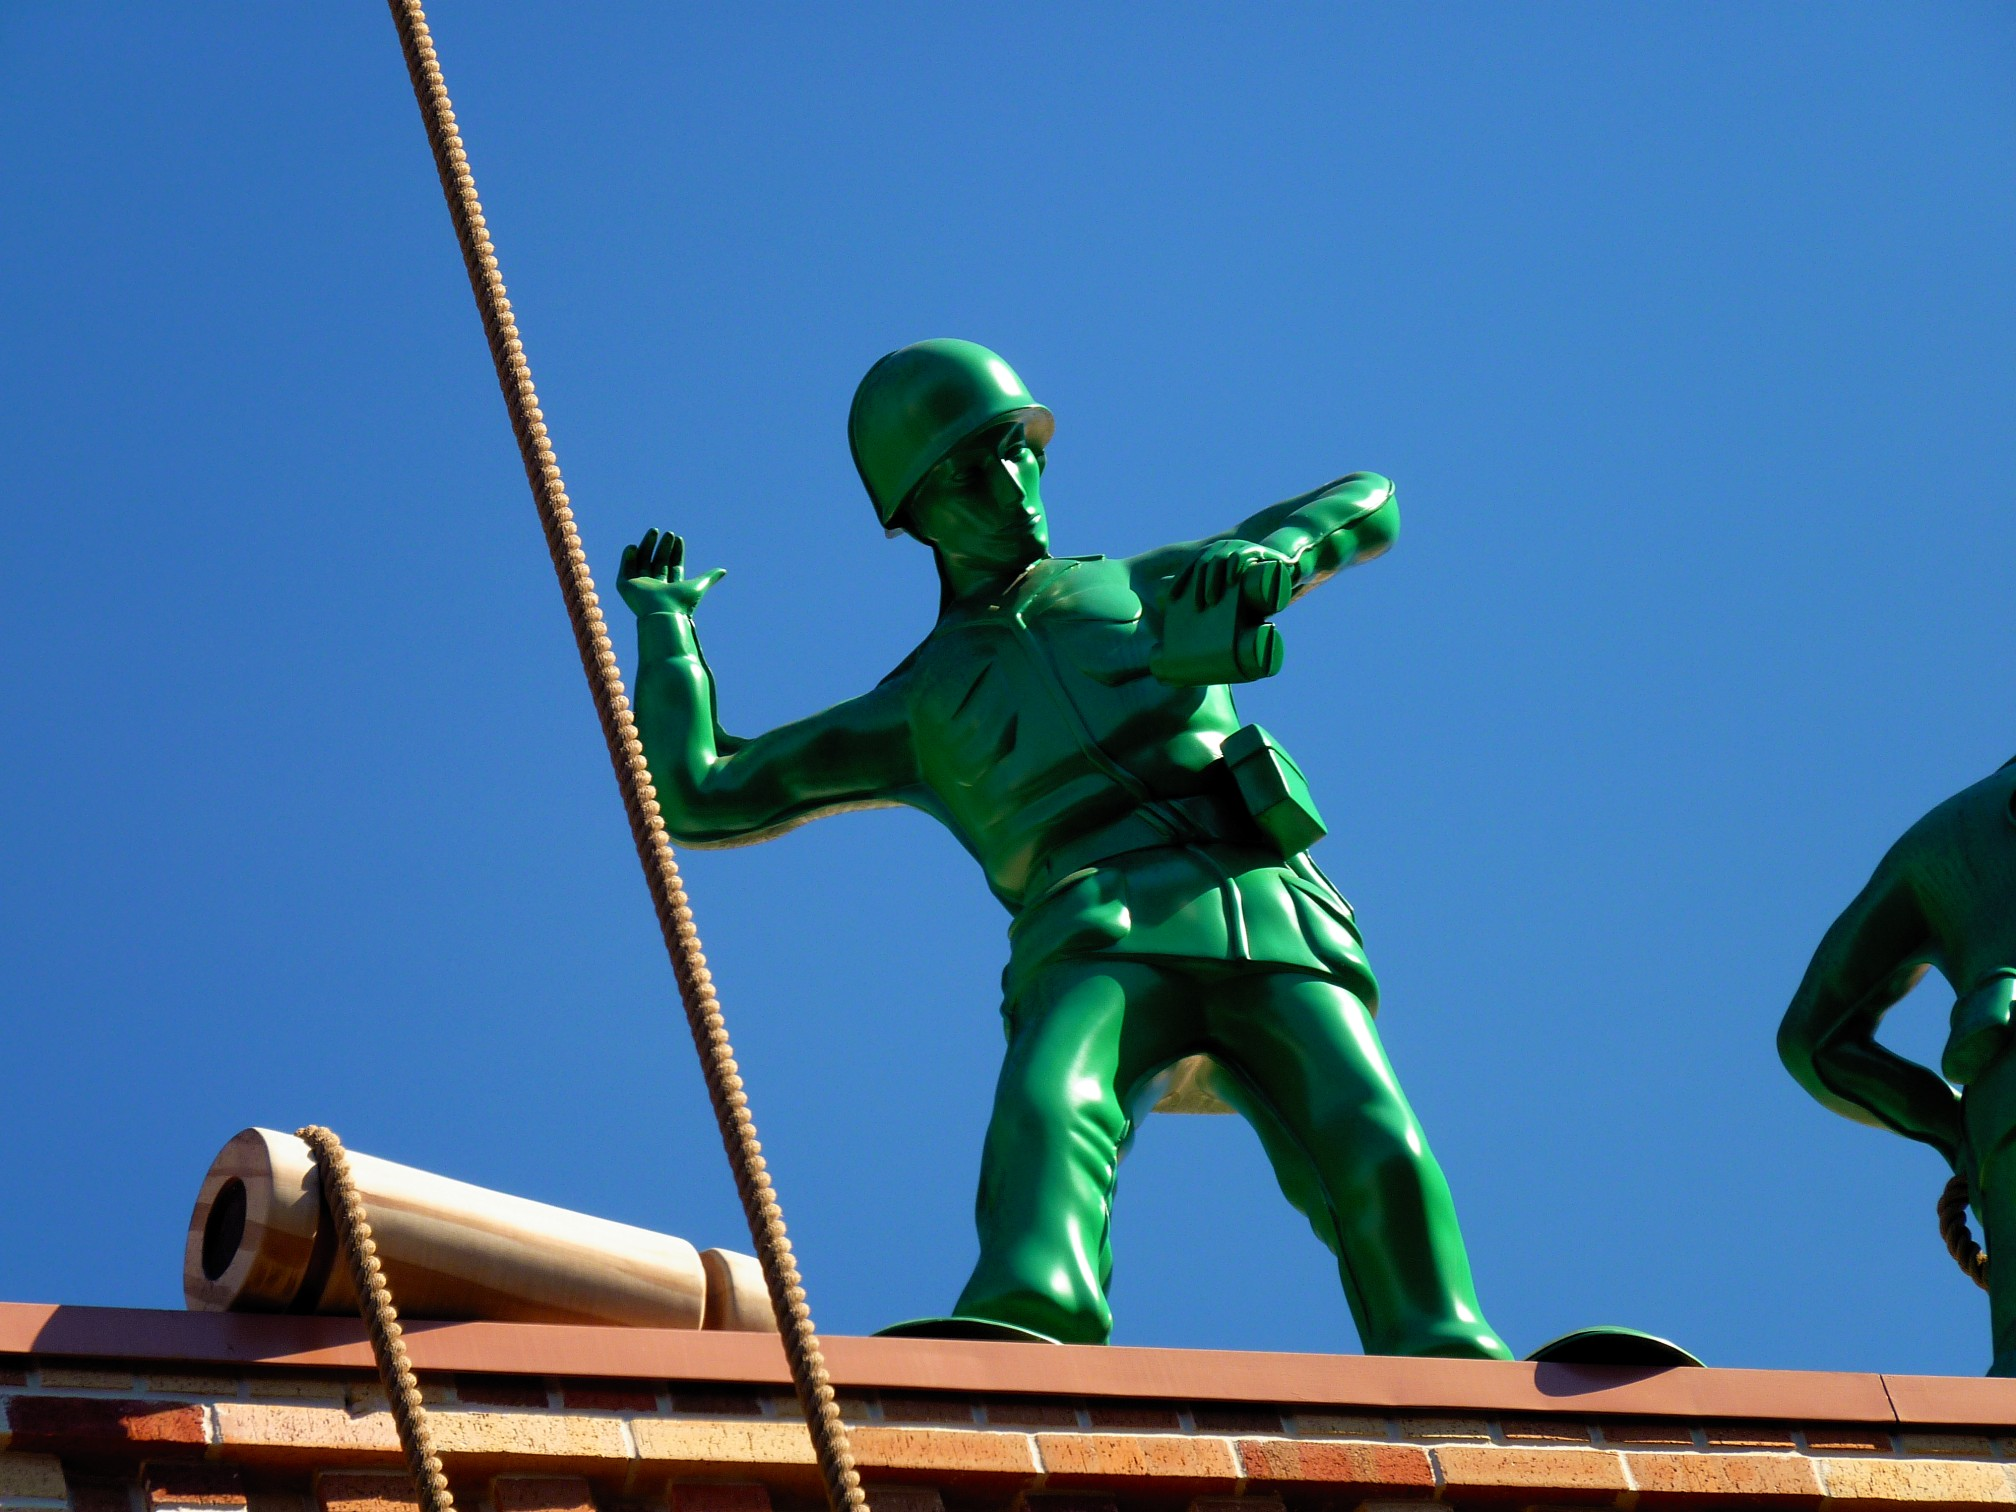 Jud's Disney Picture of the Day: GREEN ARMY MAN